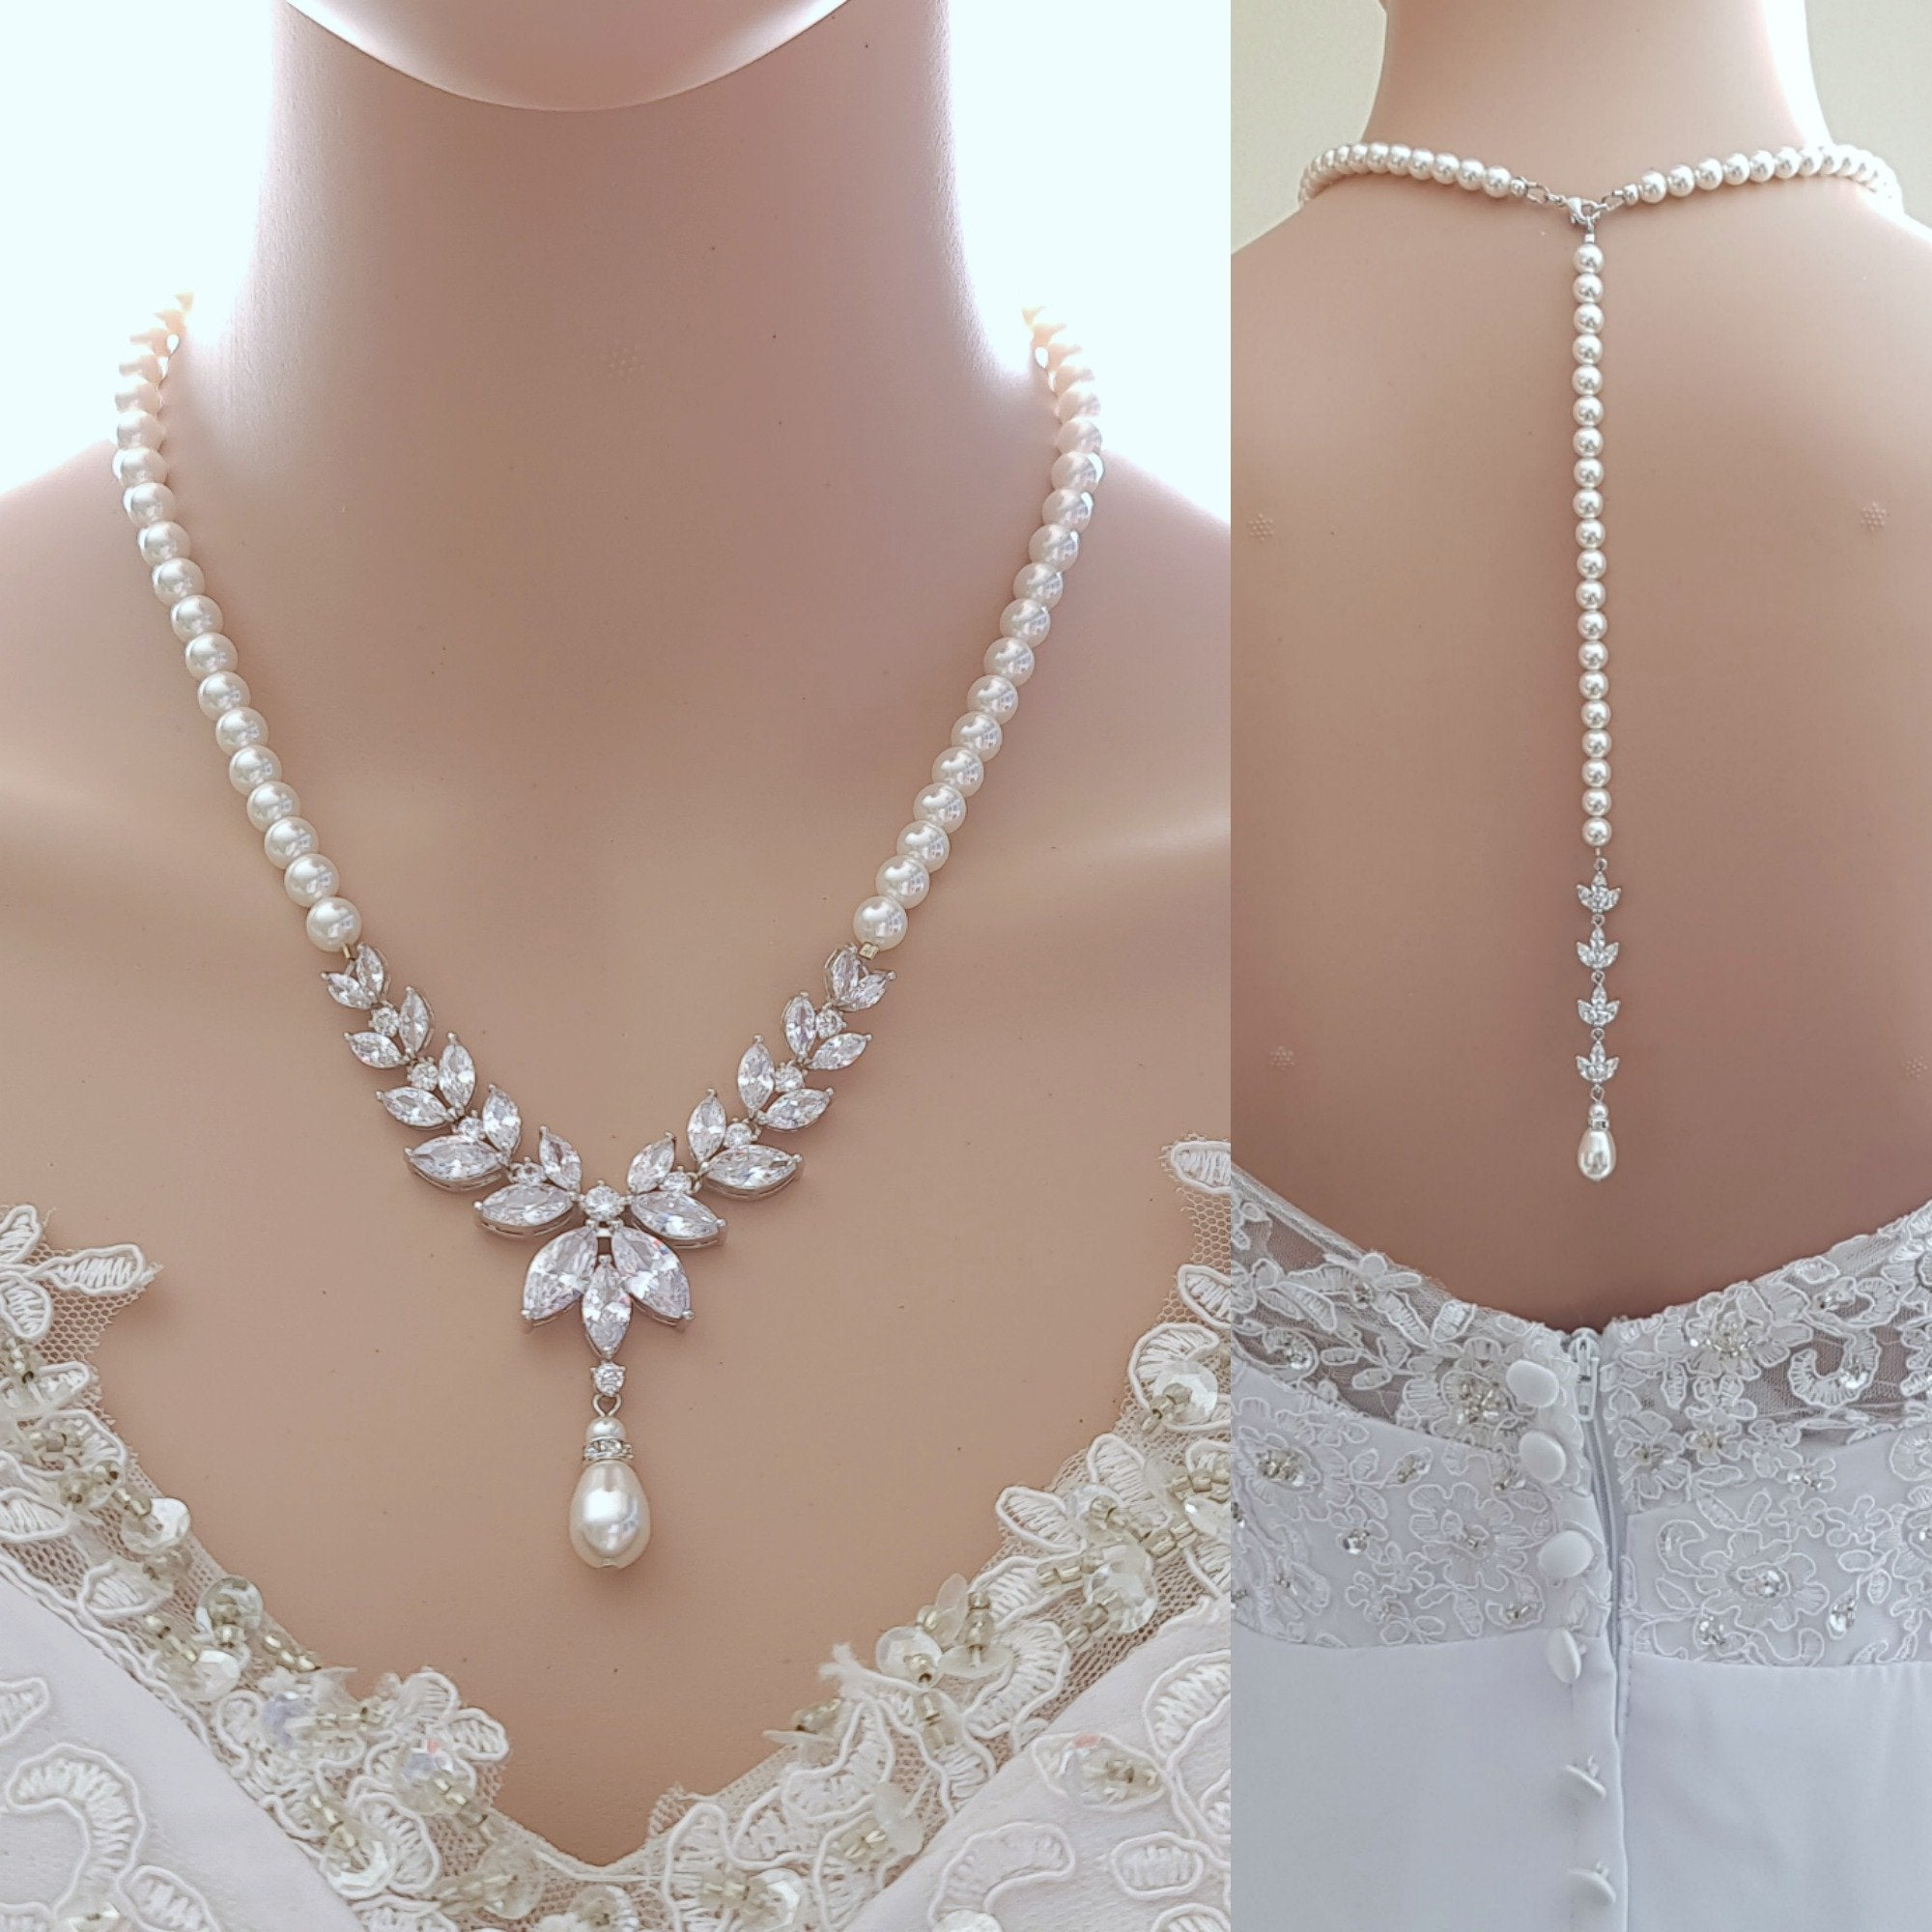 Pearl Bridal Necklace with Detachable Backdrops-Katie - PoetryDesigns